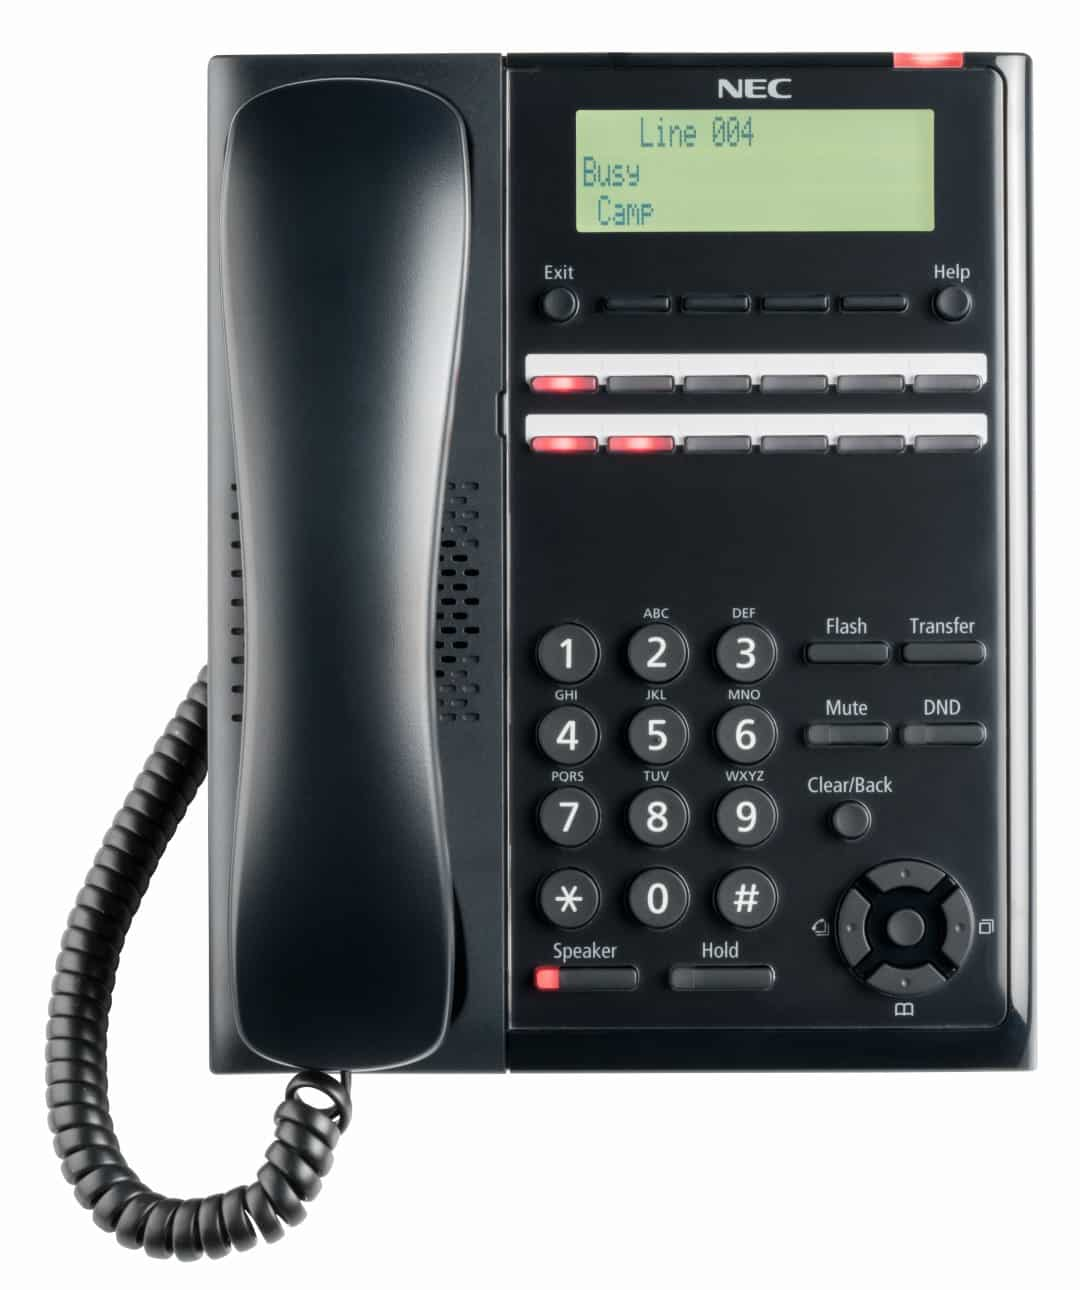 NEC SL2100 12 Button Digital Telephone front view - NEC SL2100